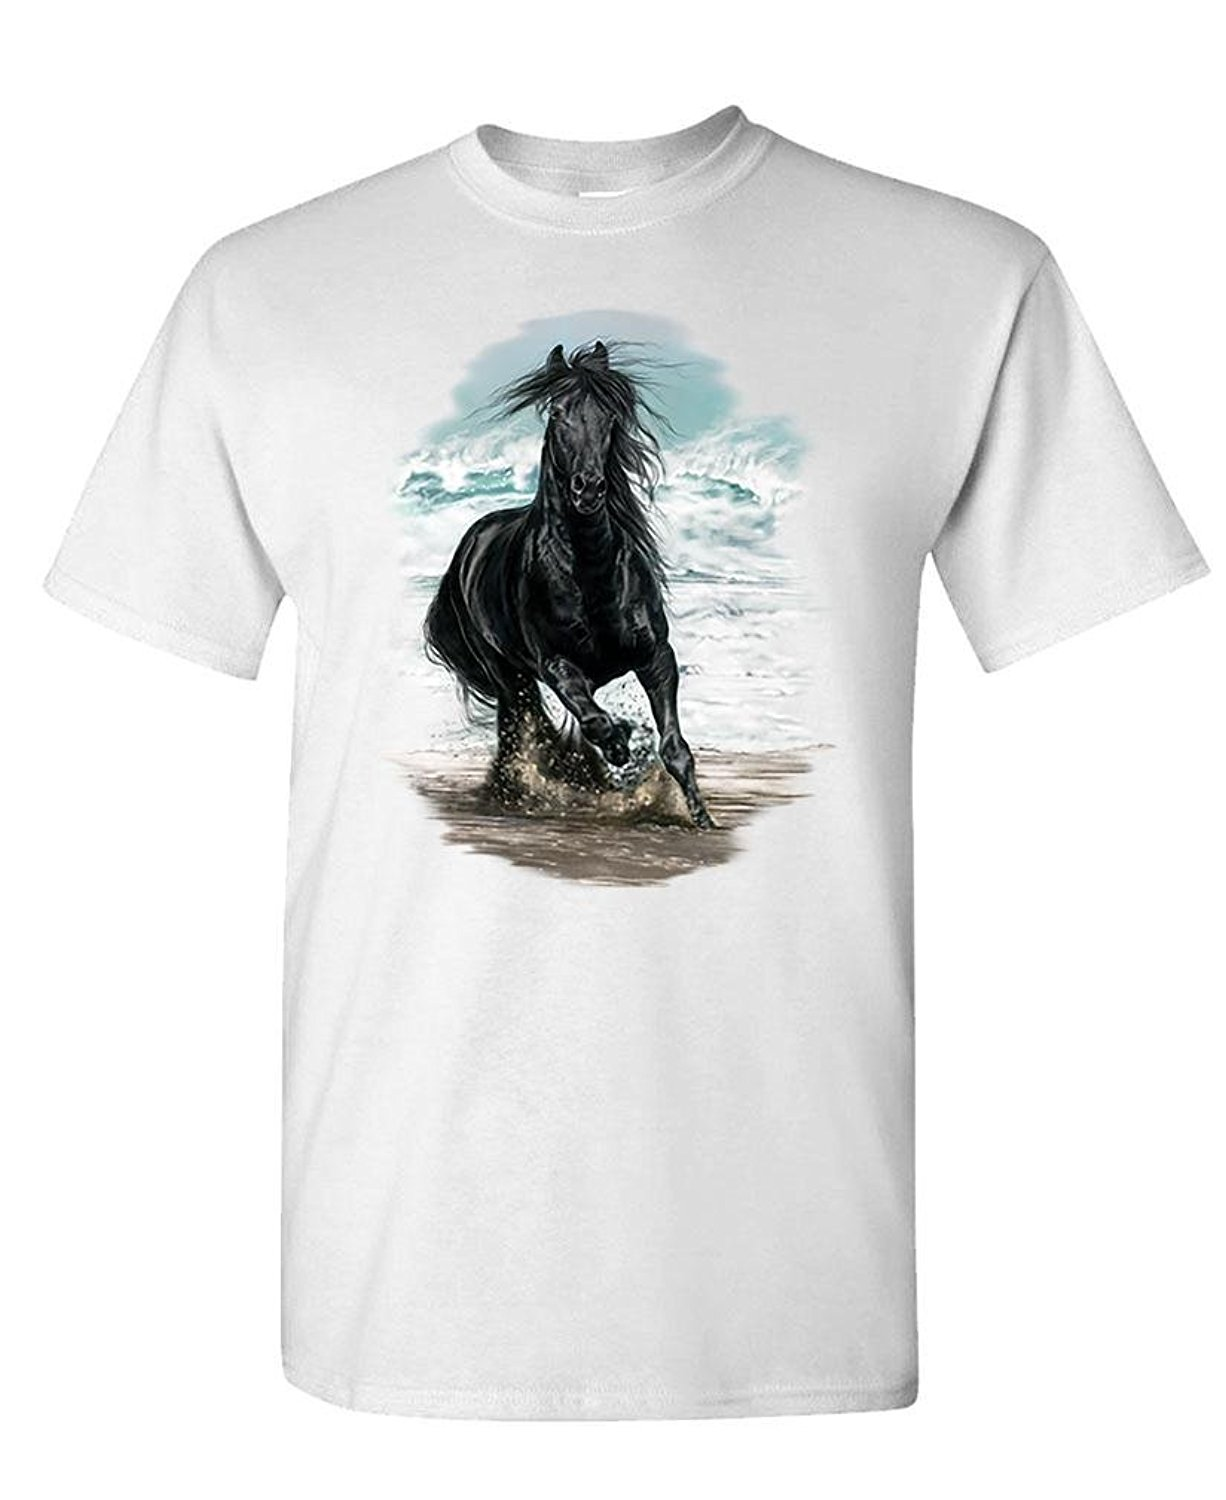 Top design short sleeve cotton party shirts on the beach for Print photo on shirt